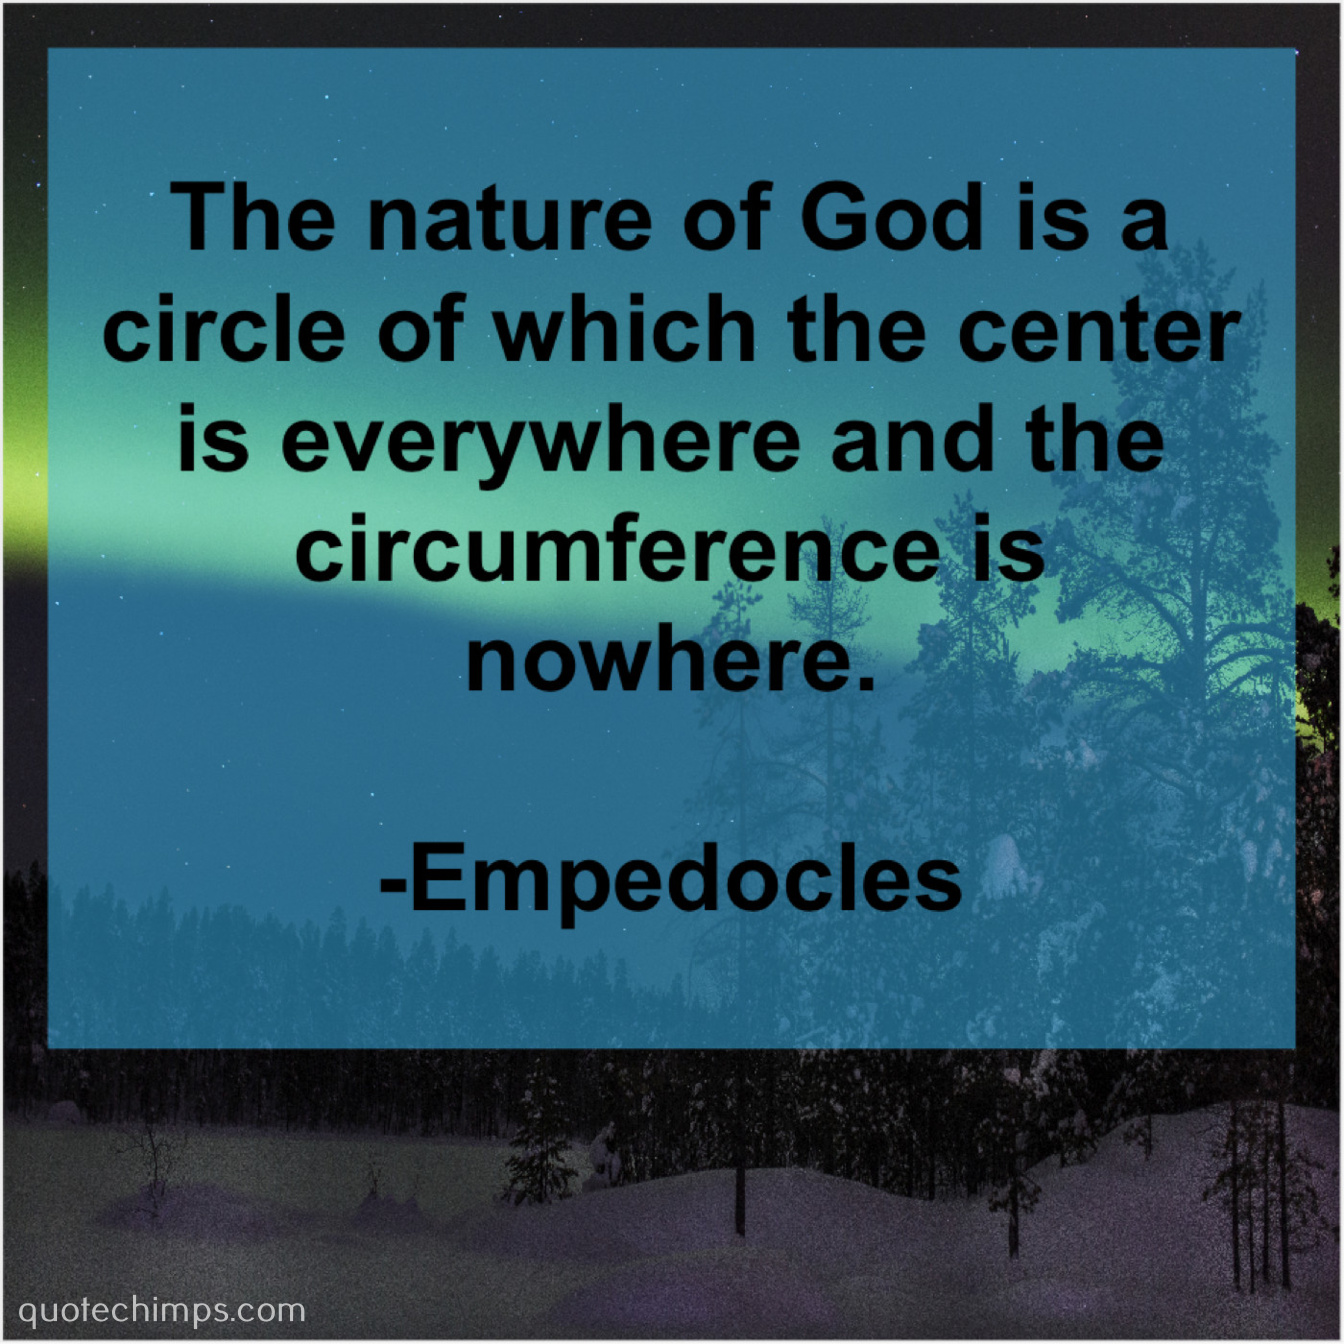 empedocles the nature of god is quote chimps